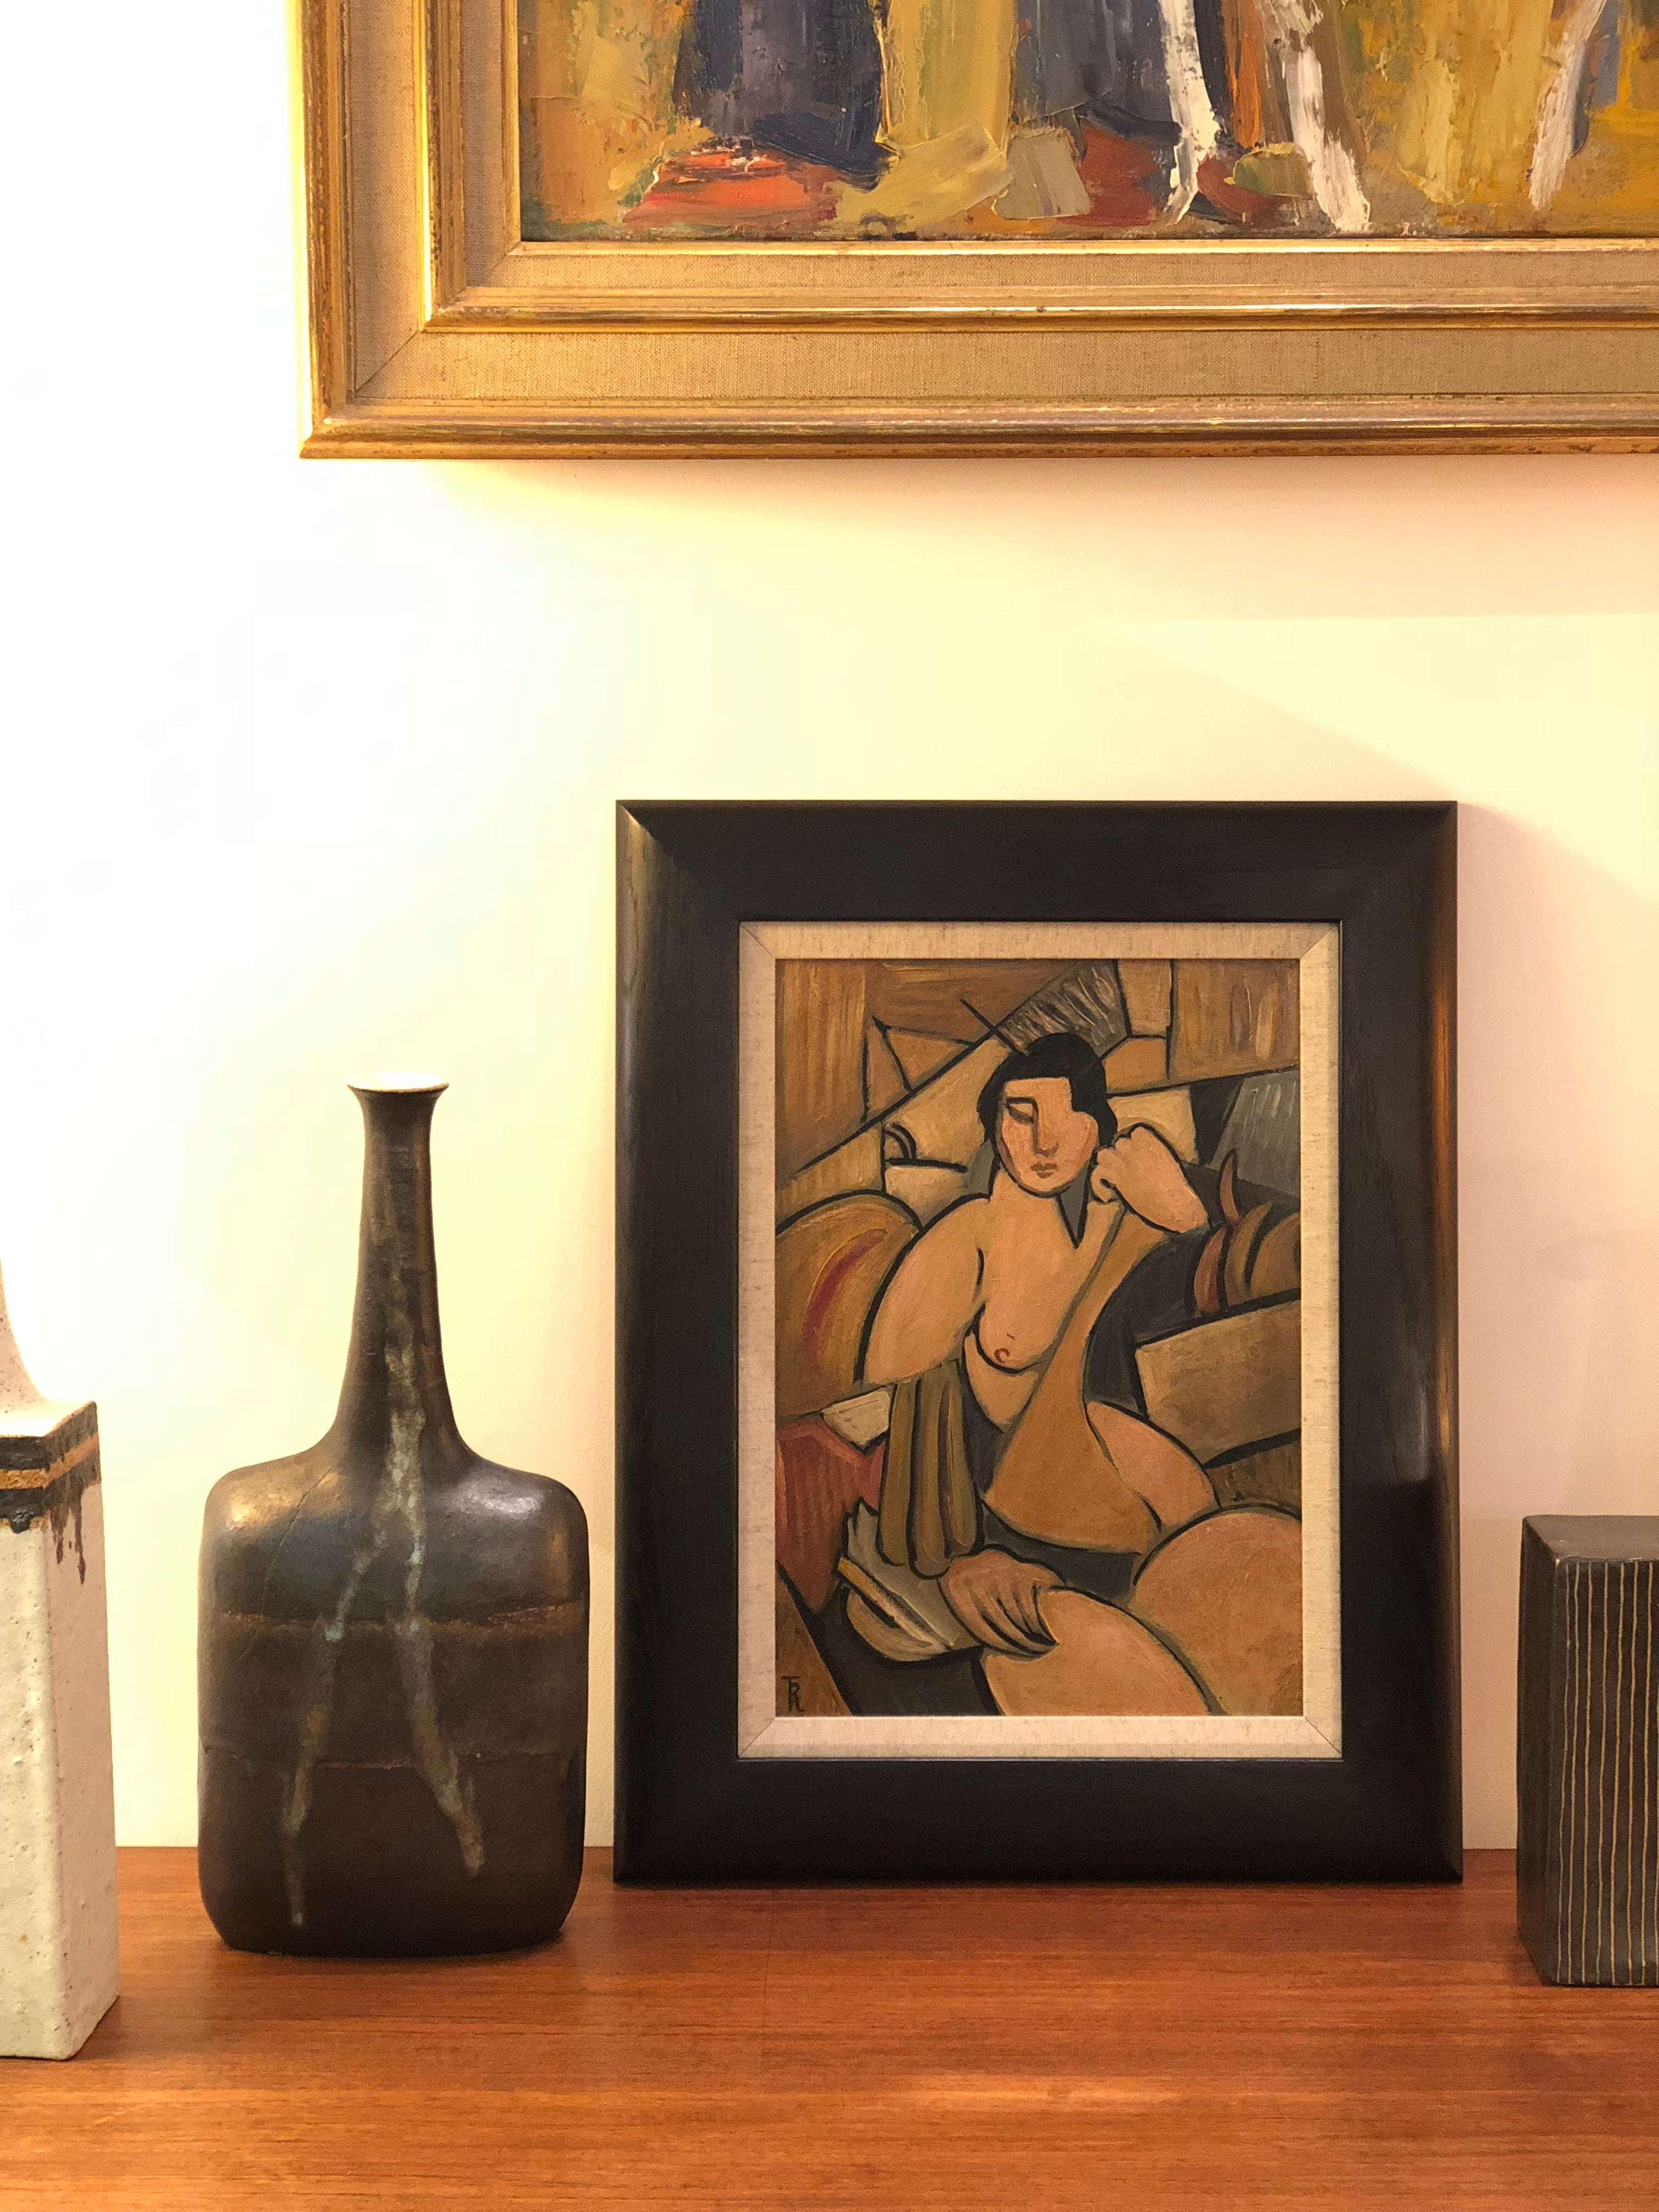 'Seated Cubist Nude' by T.R. (circa 1940s - 1960s)